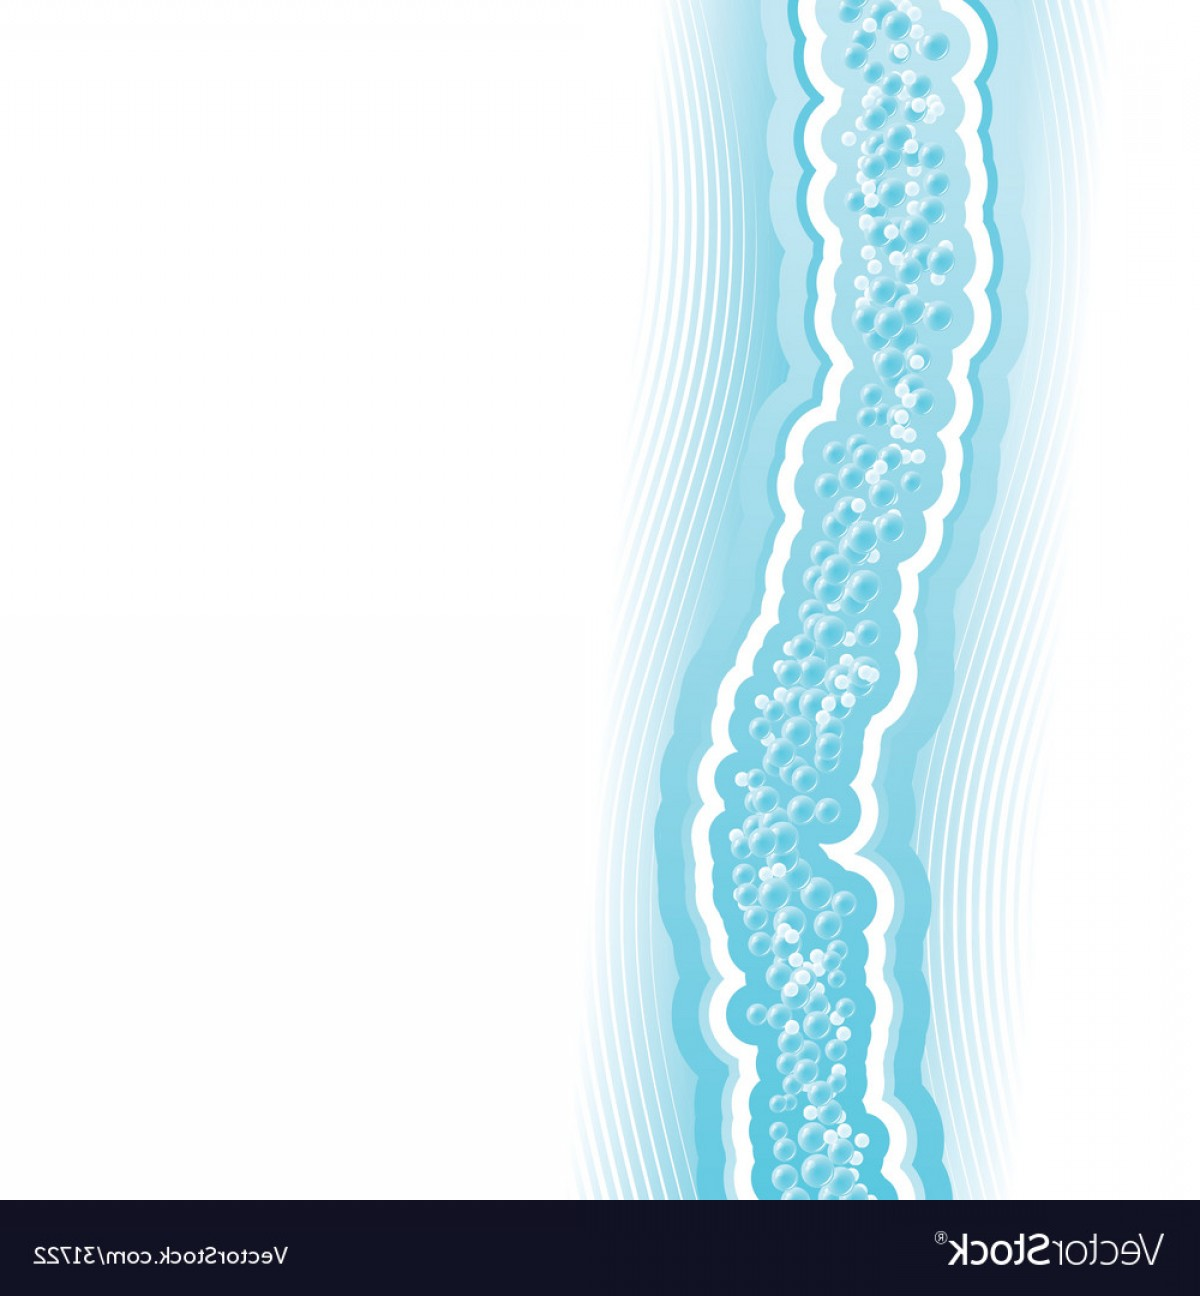 Water Flow Vector: Fresh Lined Art Water Flow Vector